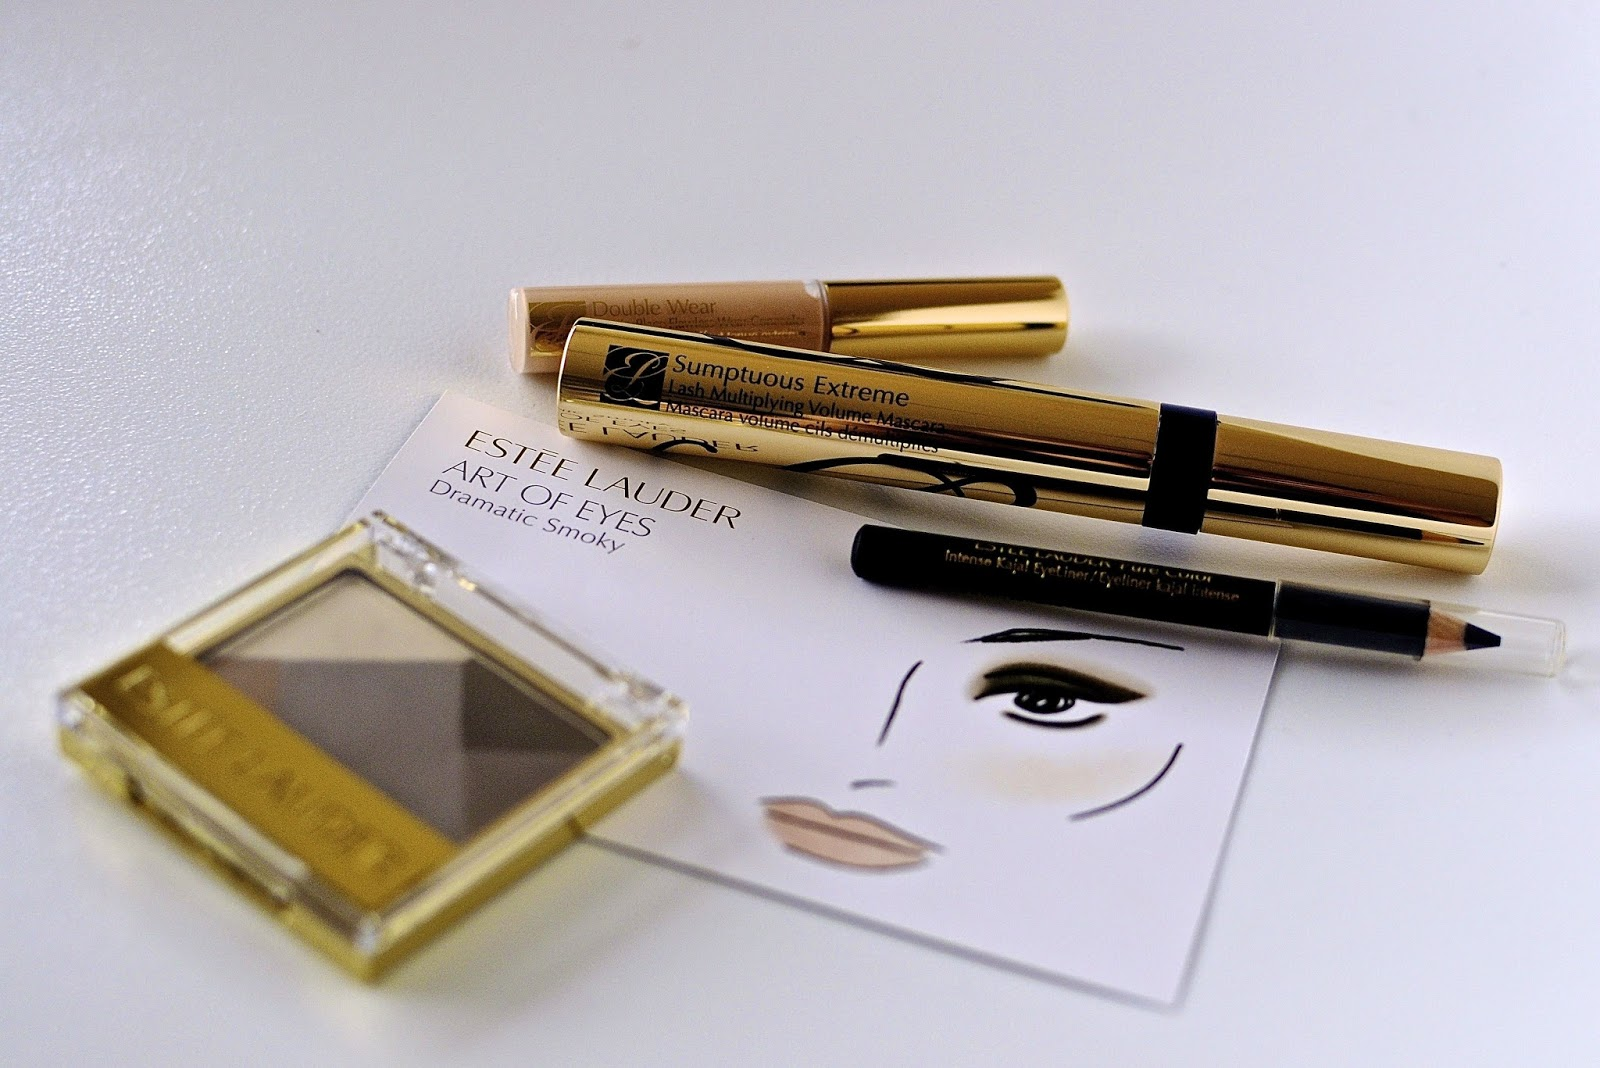 Estee lauder eye makeup